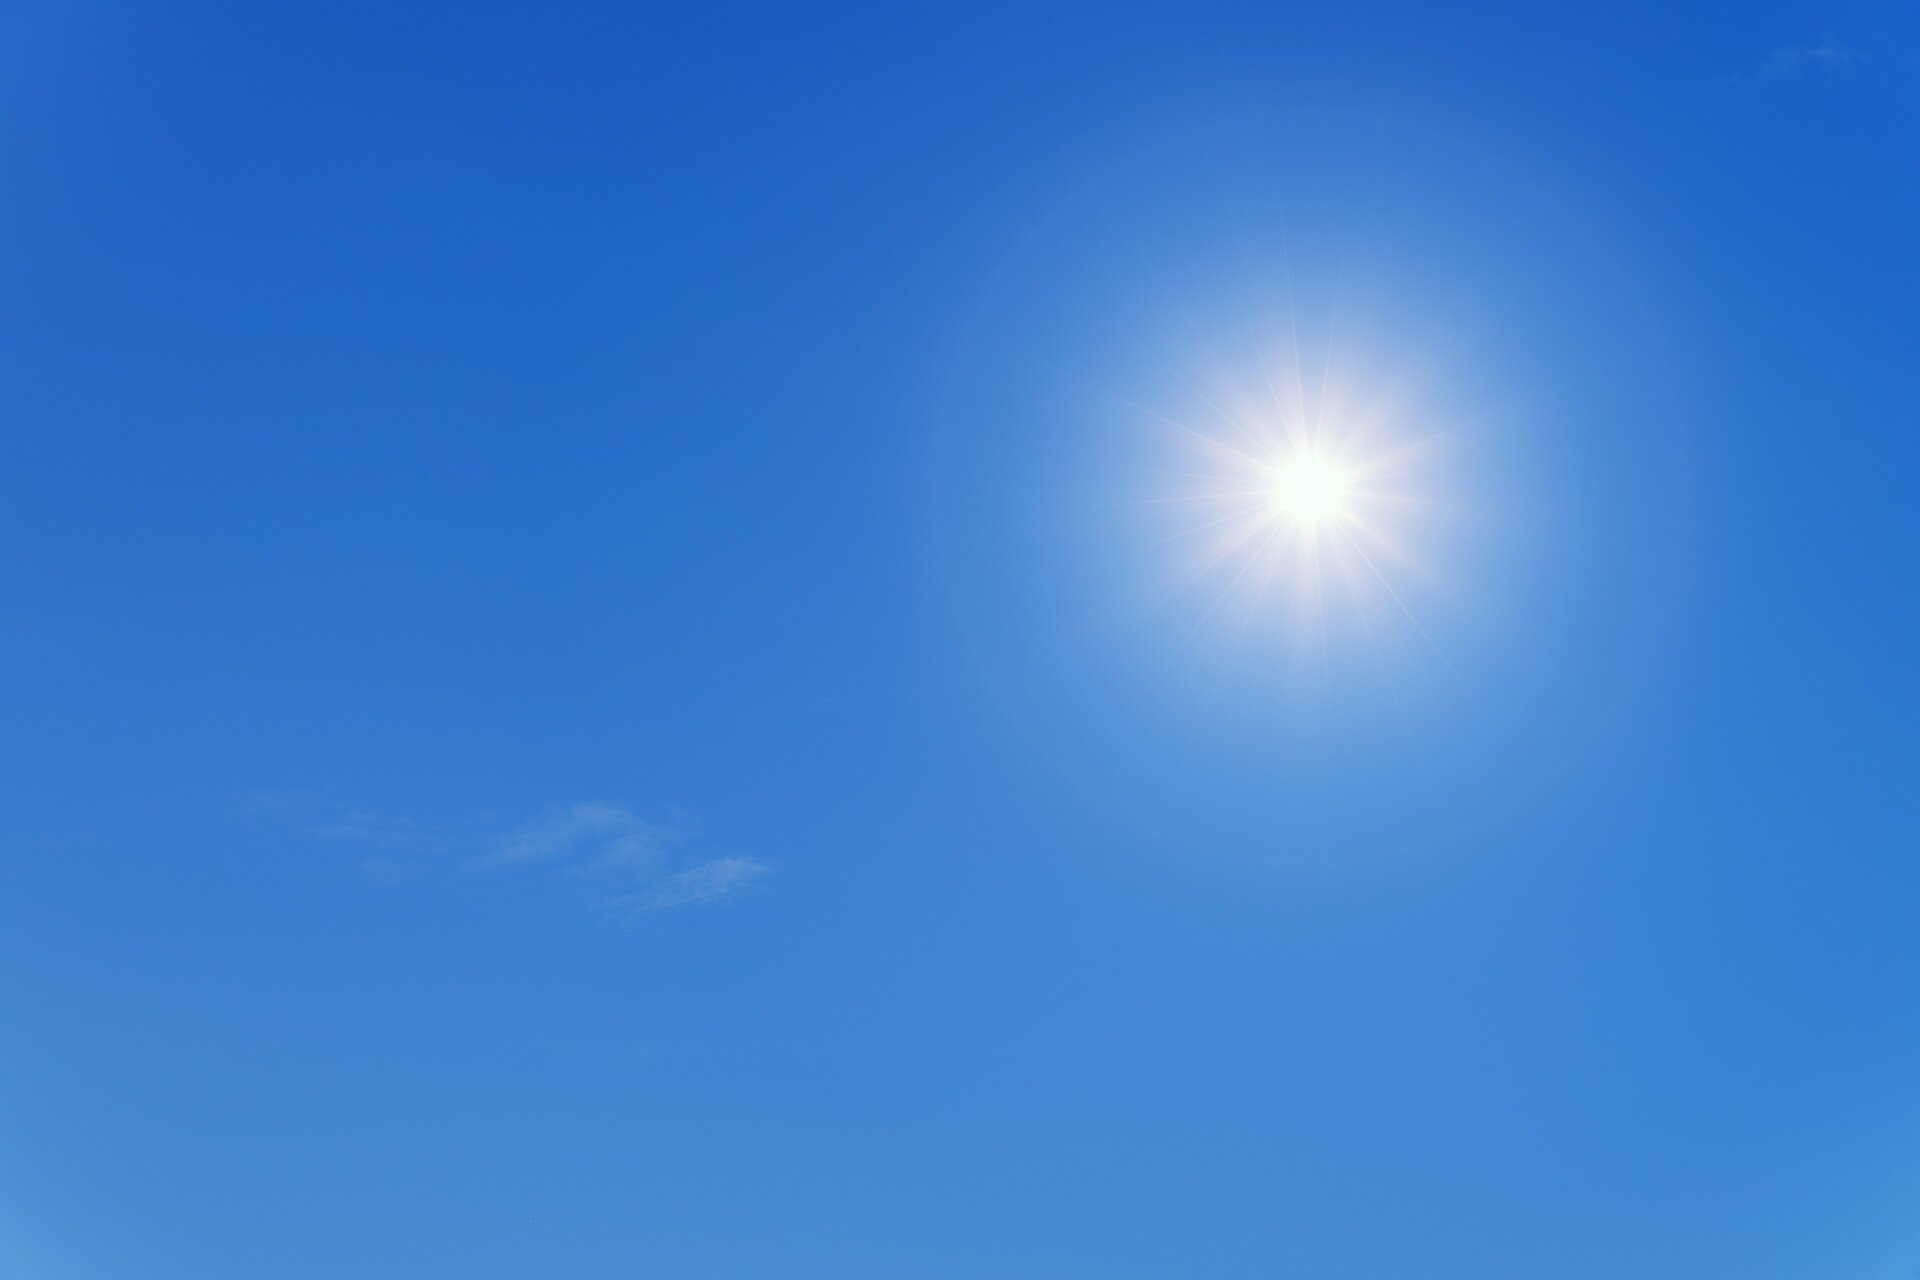 Sunlight exposure guidelines may need to be revised, researchers warn